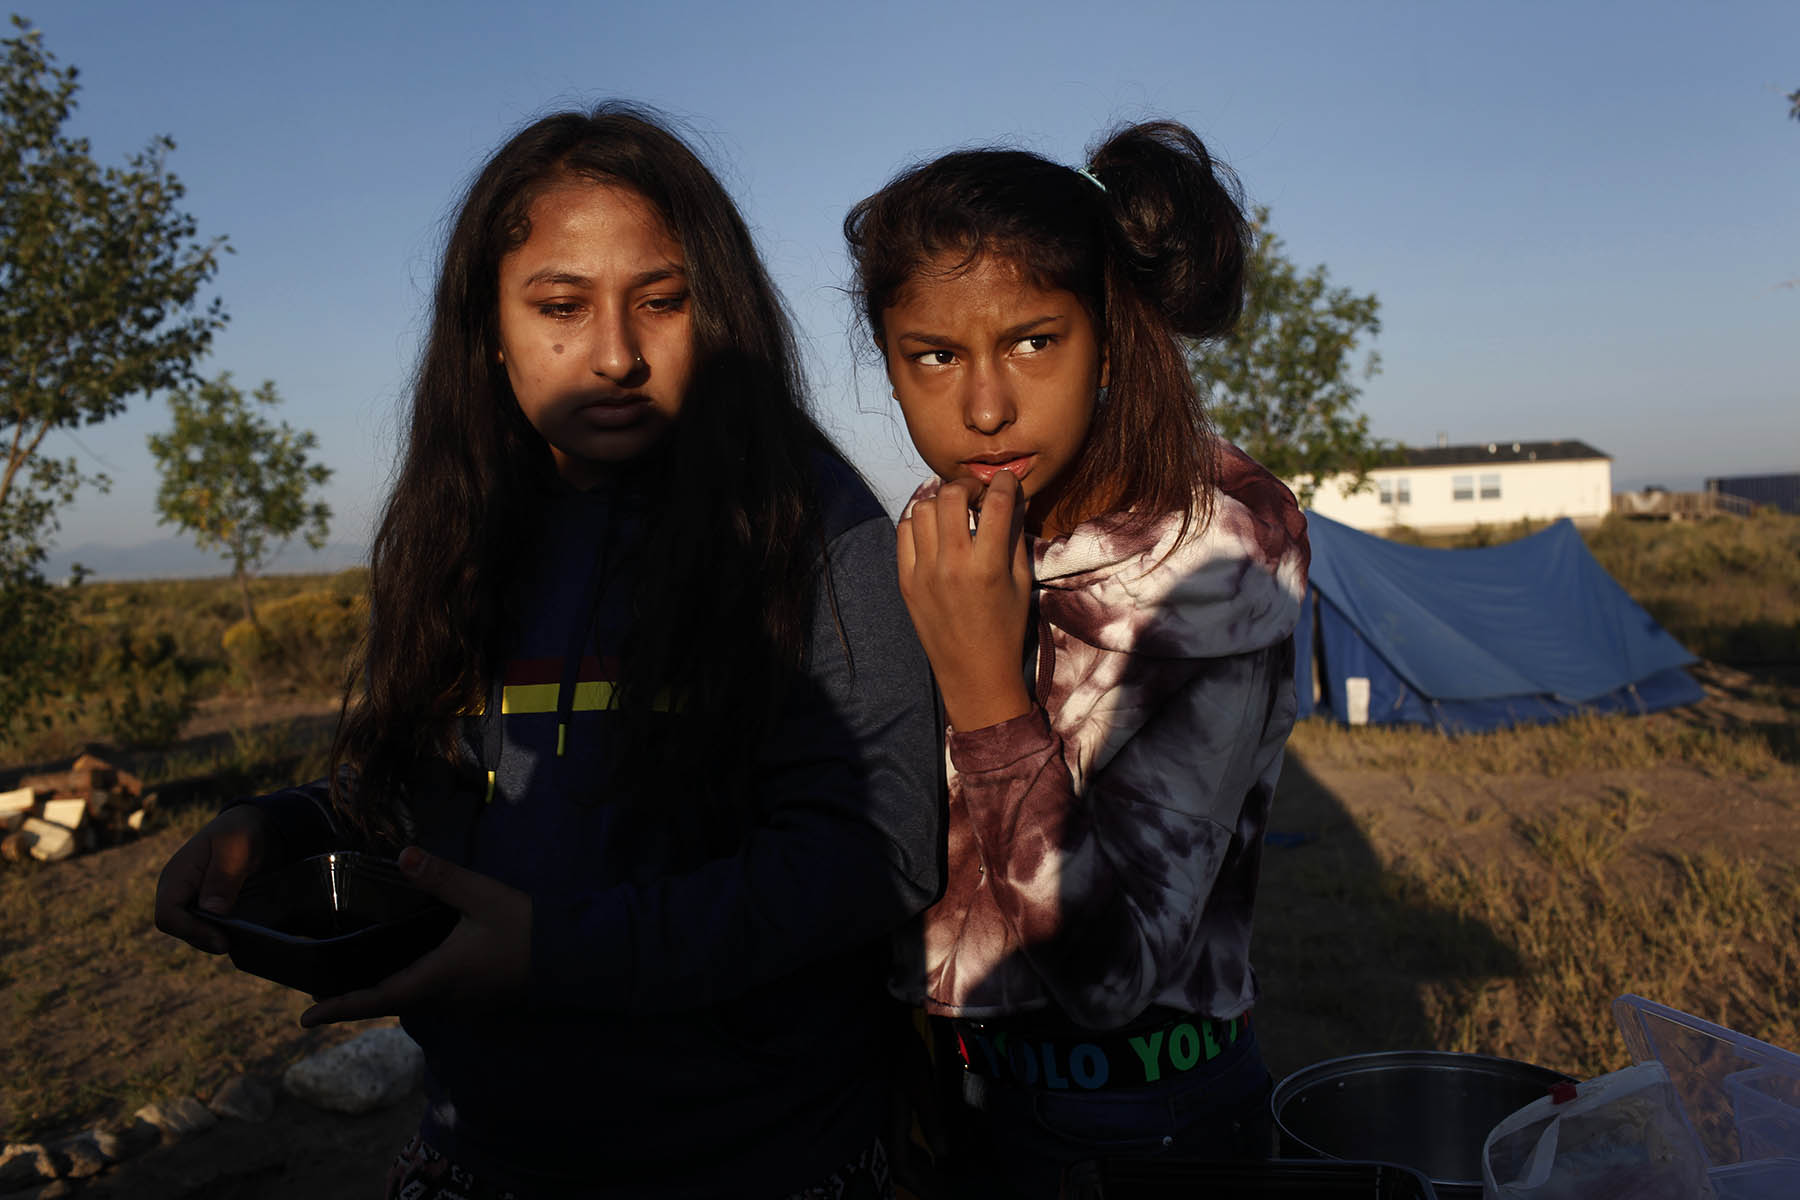 Nirshika Neopany, 14, left and Sostika Chhetri, 14, right, pause before making breakfast at their campsite in Hooper, Colo. on Sept. 2, 2017. It's not far from the Great Sand Dunes National Park and Preserve, where they would later visit for the first time.